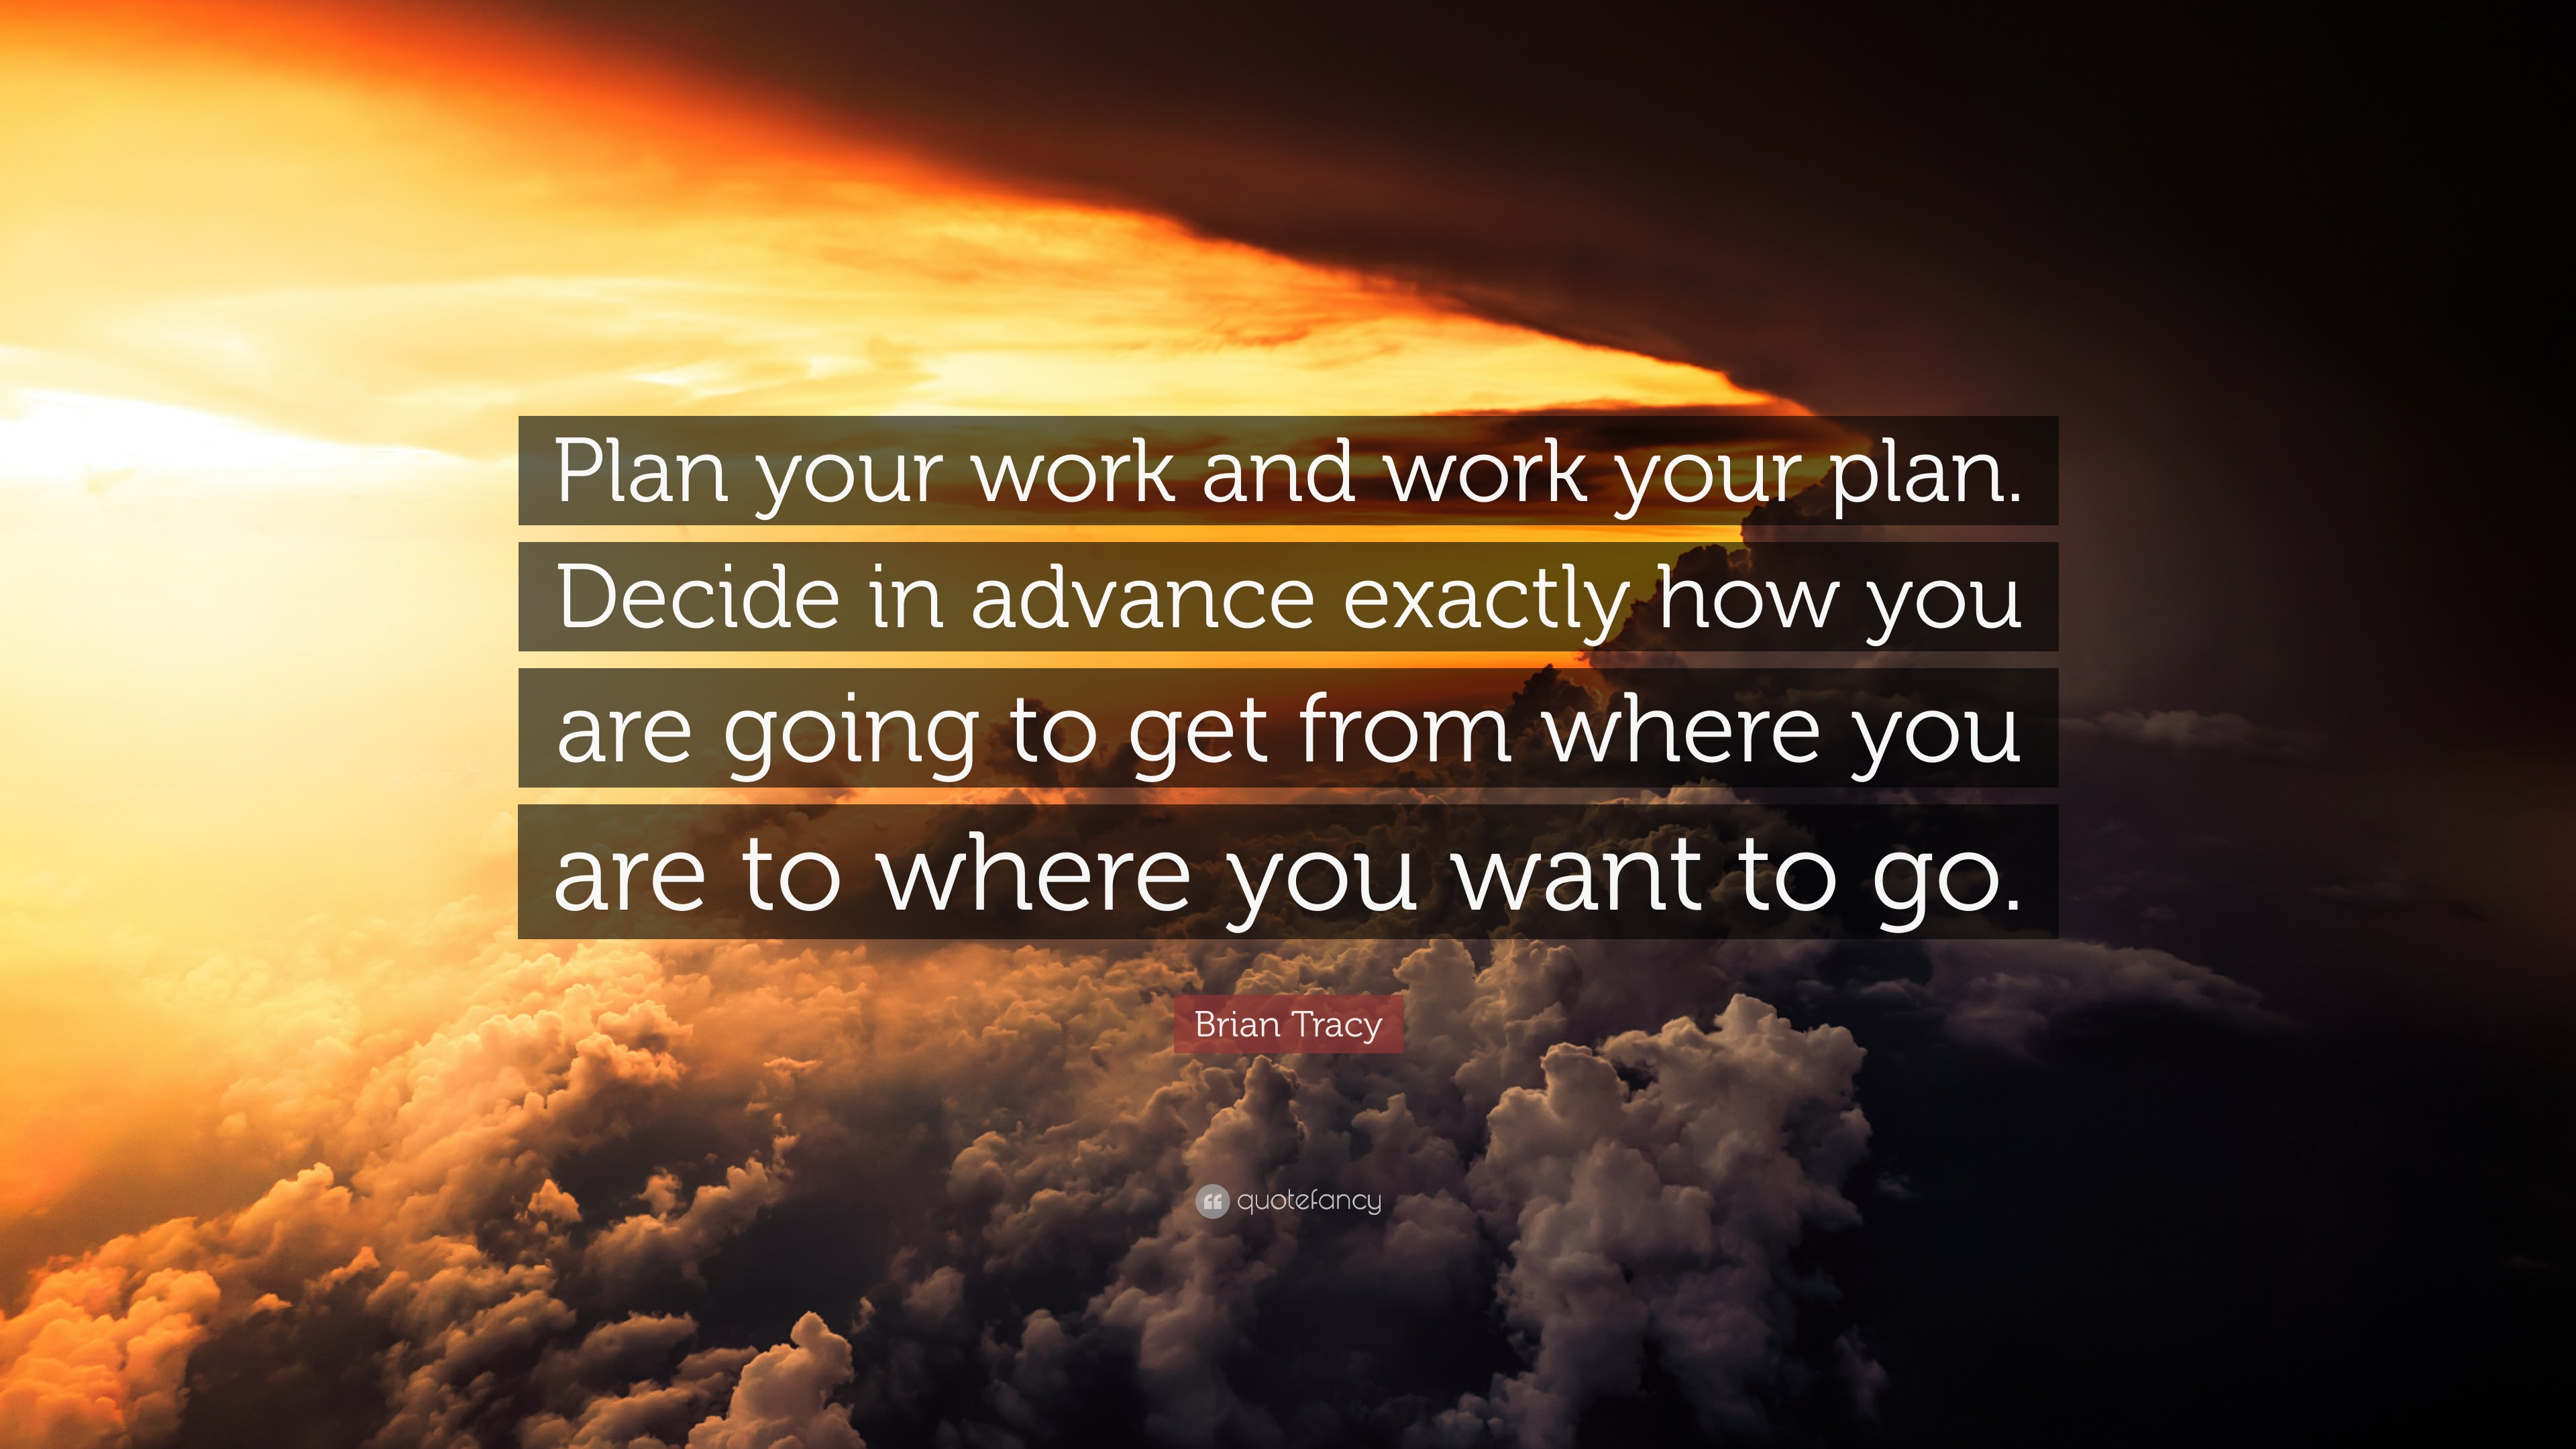 Brian Tracy Quote Plan Your Work And Work Your Plan Decide In